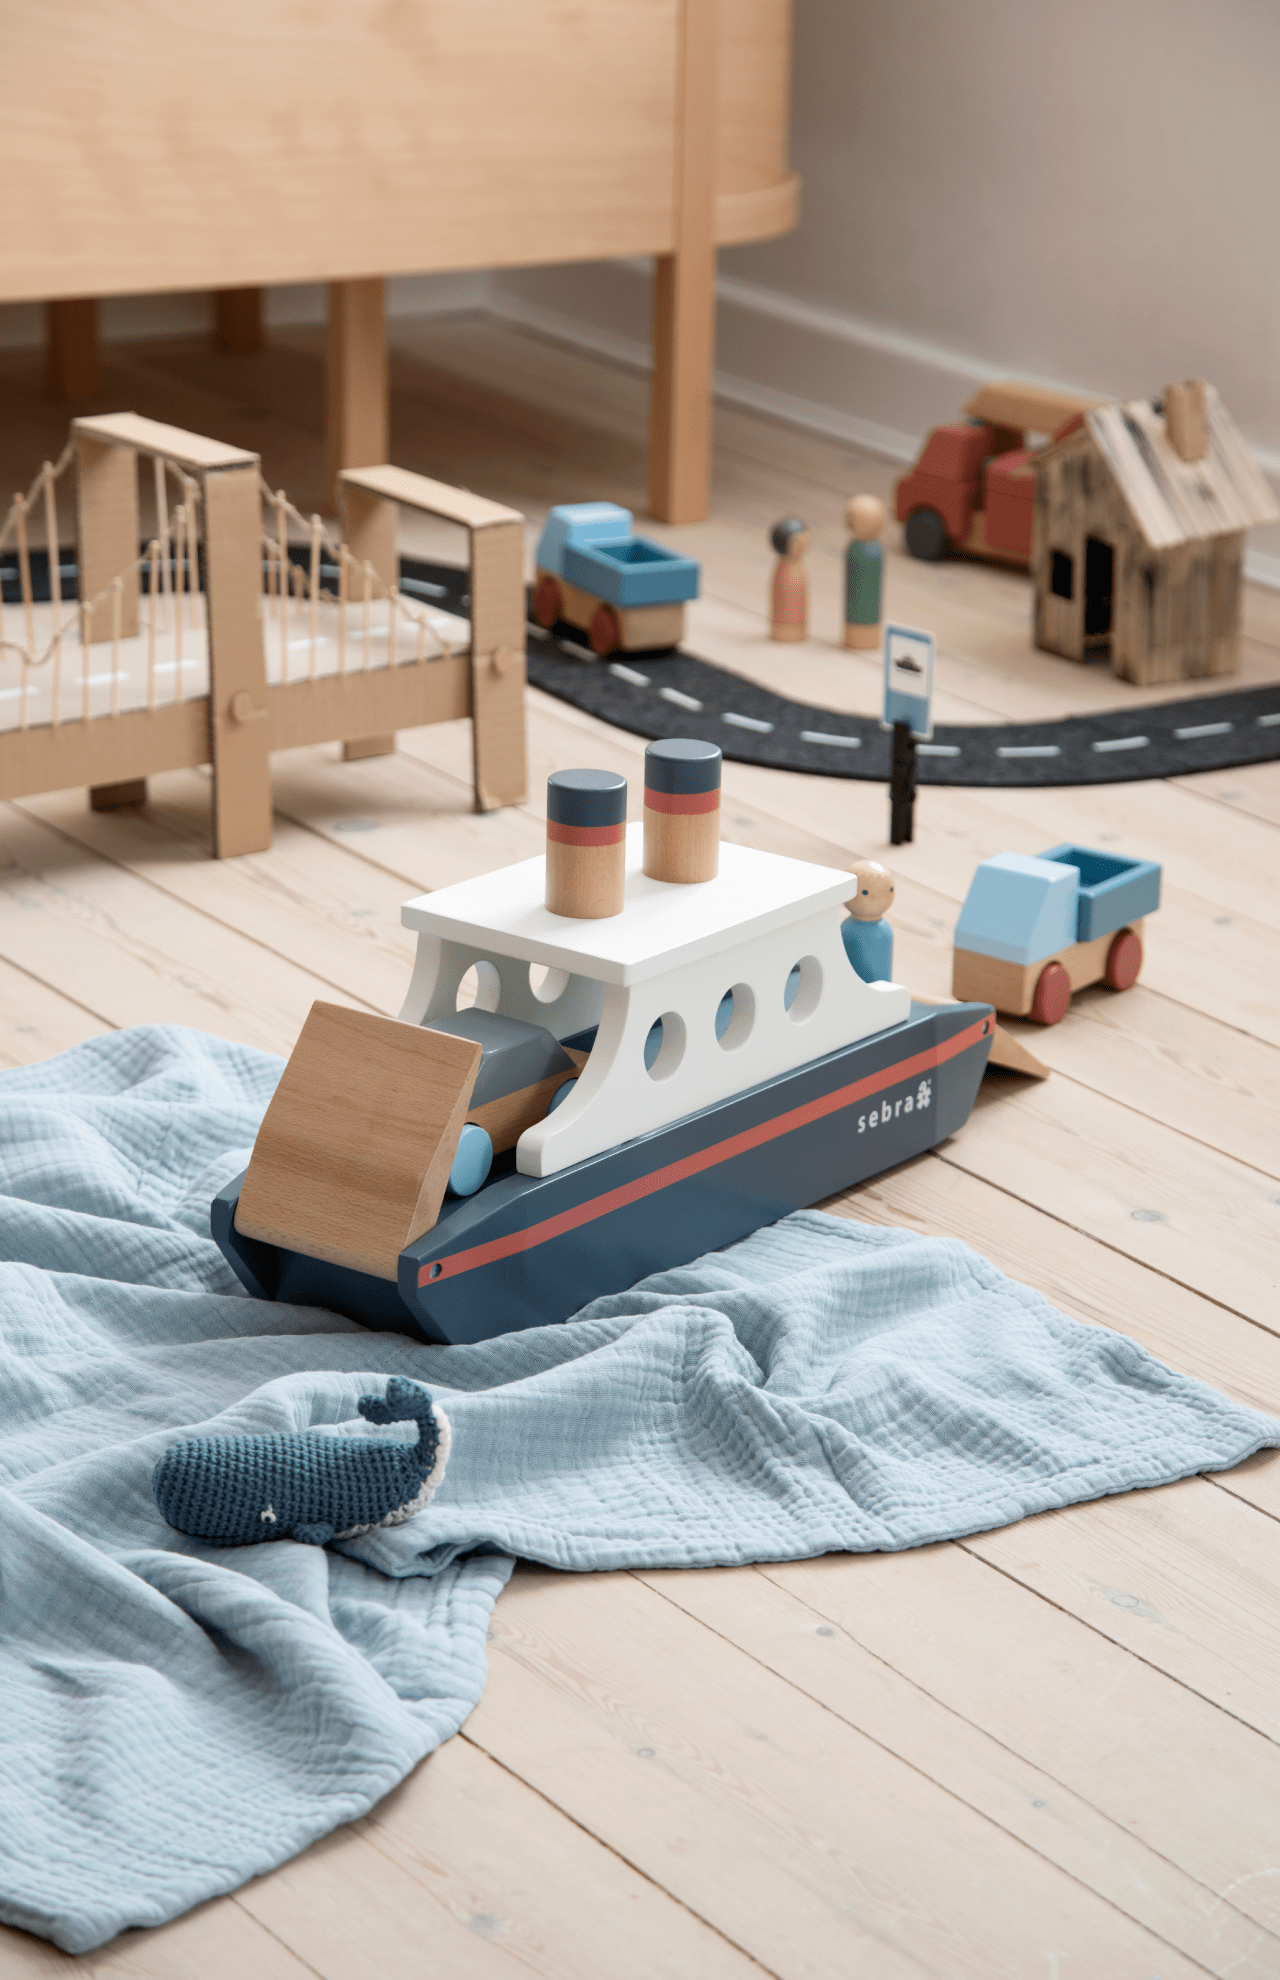 Sebra Wooden Ferry In 2020 Wooden Childrens Toys Making Wooden Toys Wooden Playset